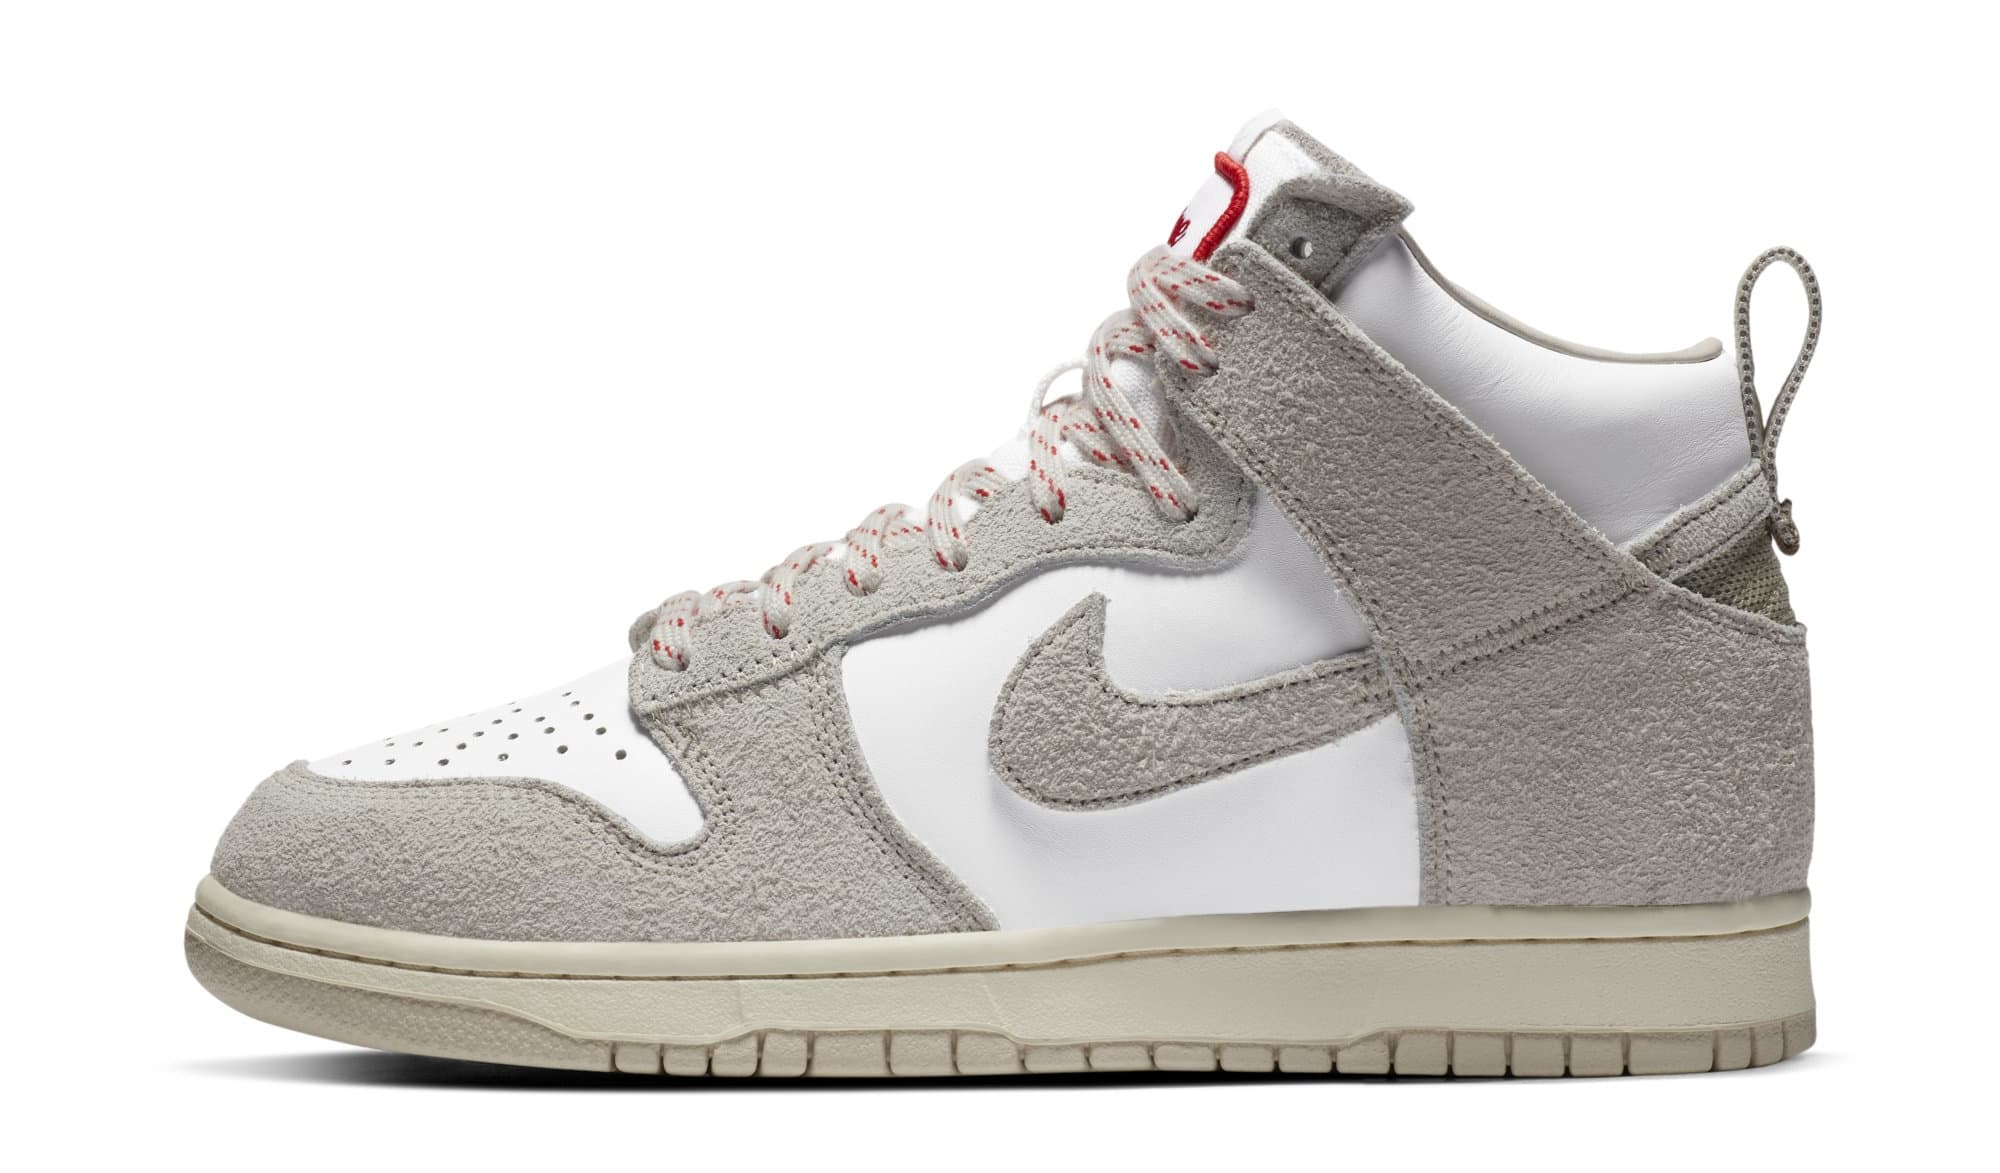 Notre x Nike Dunk High 'Light Orewood Brown/White' (Lateral)